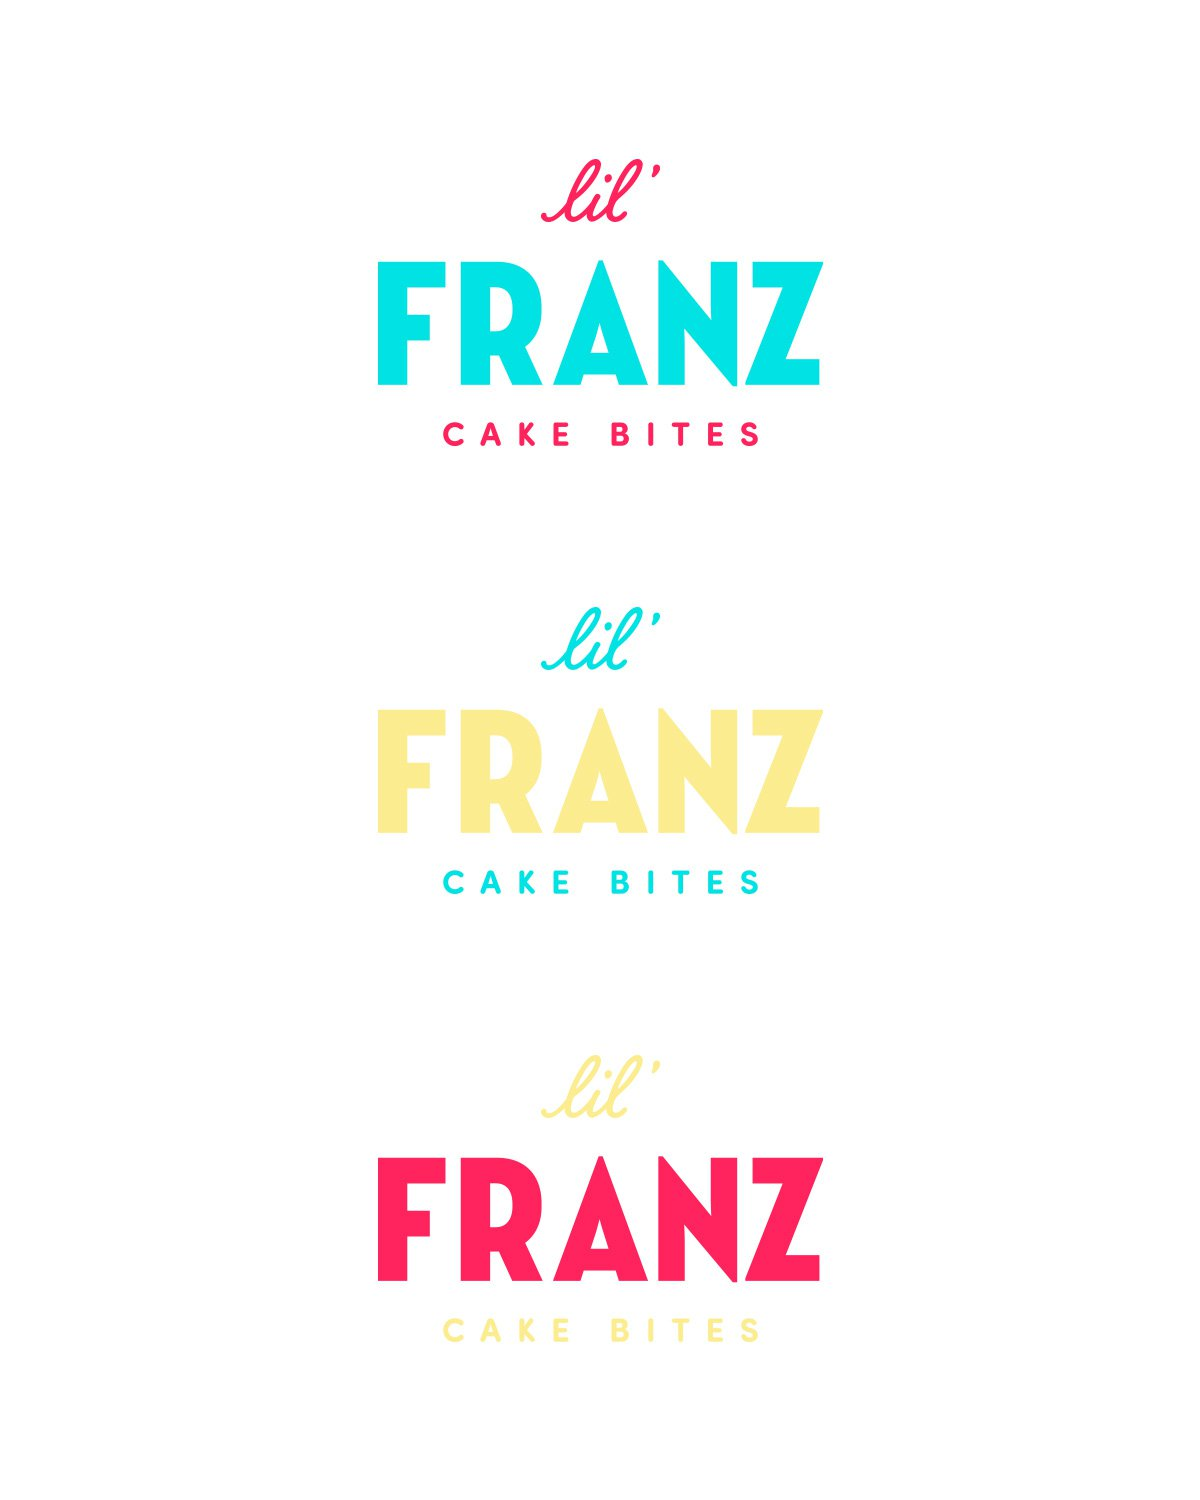 Lil' Franz logo color varieties